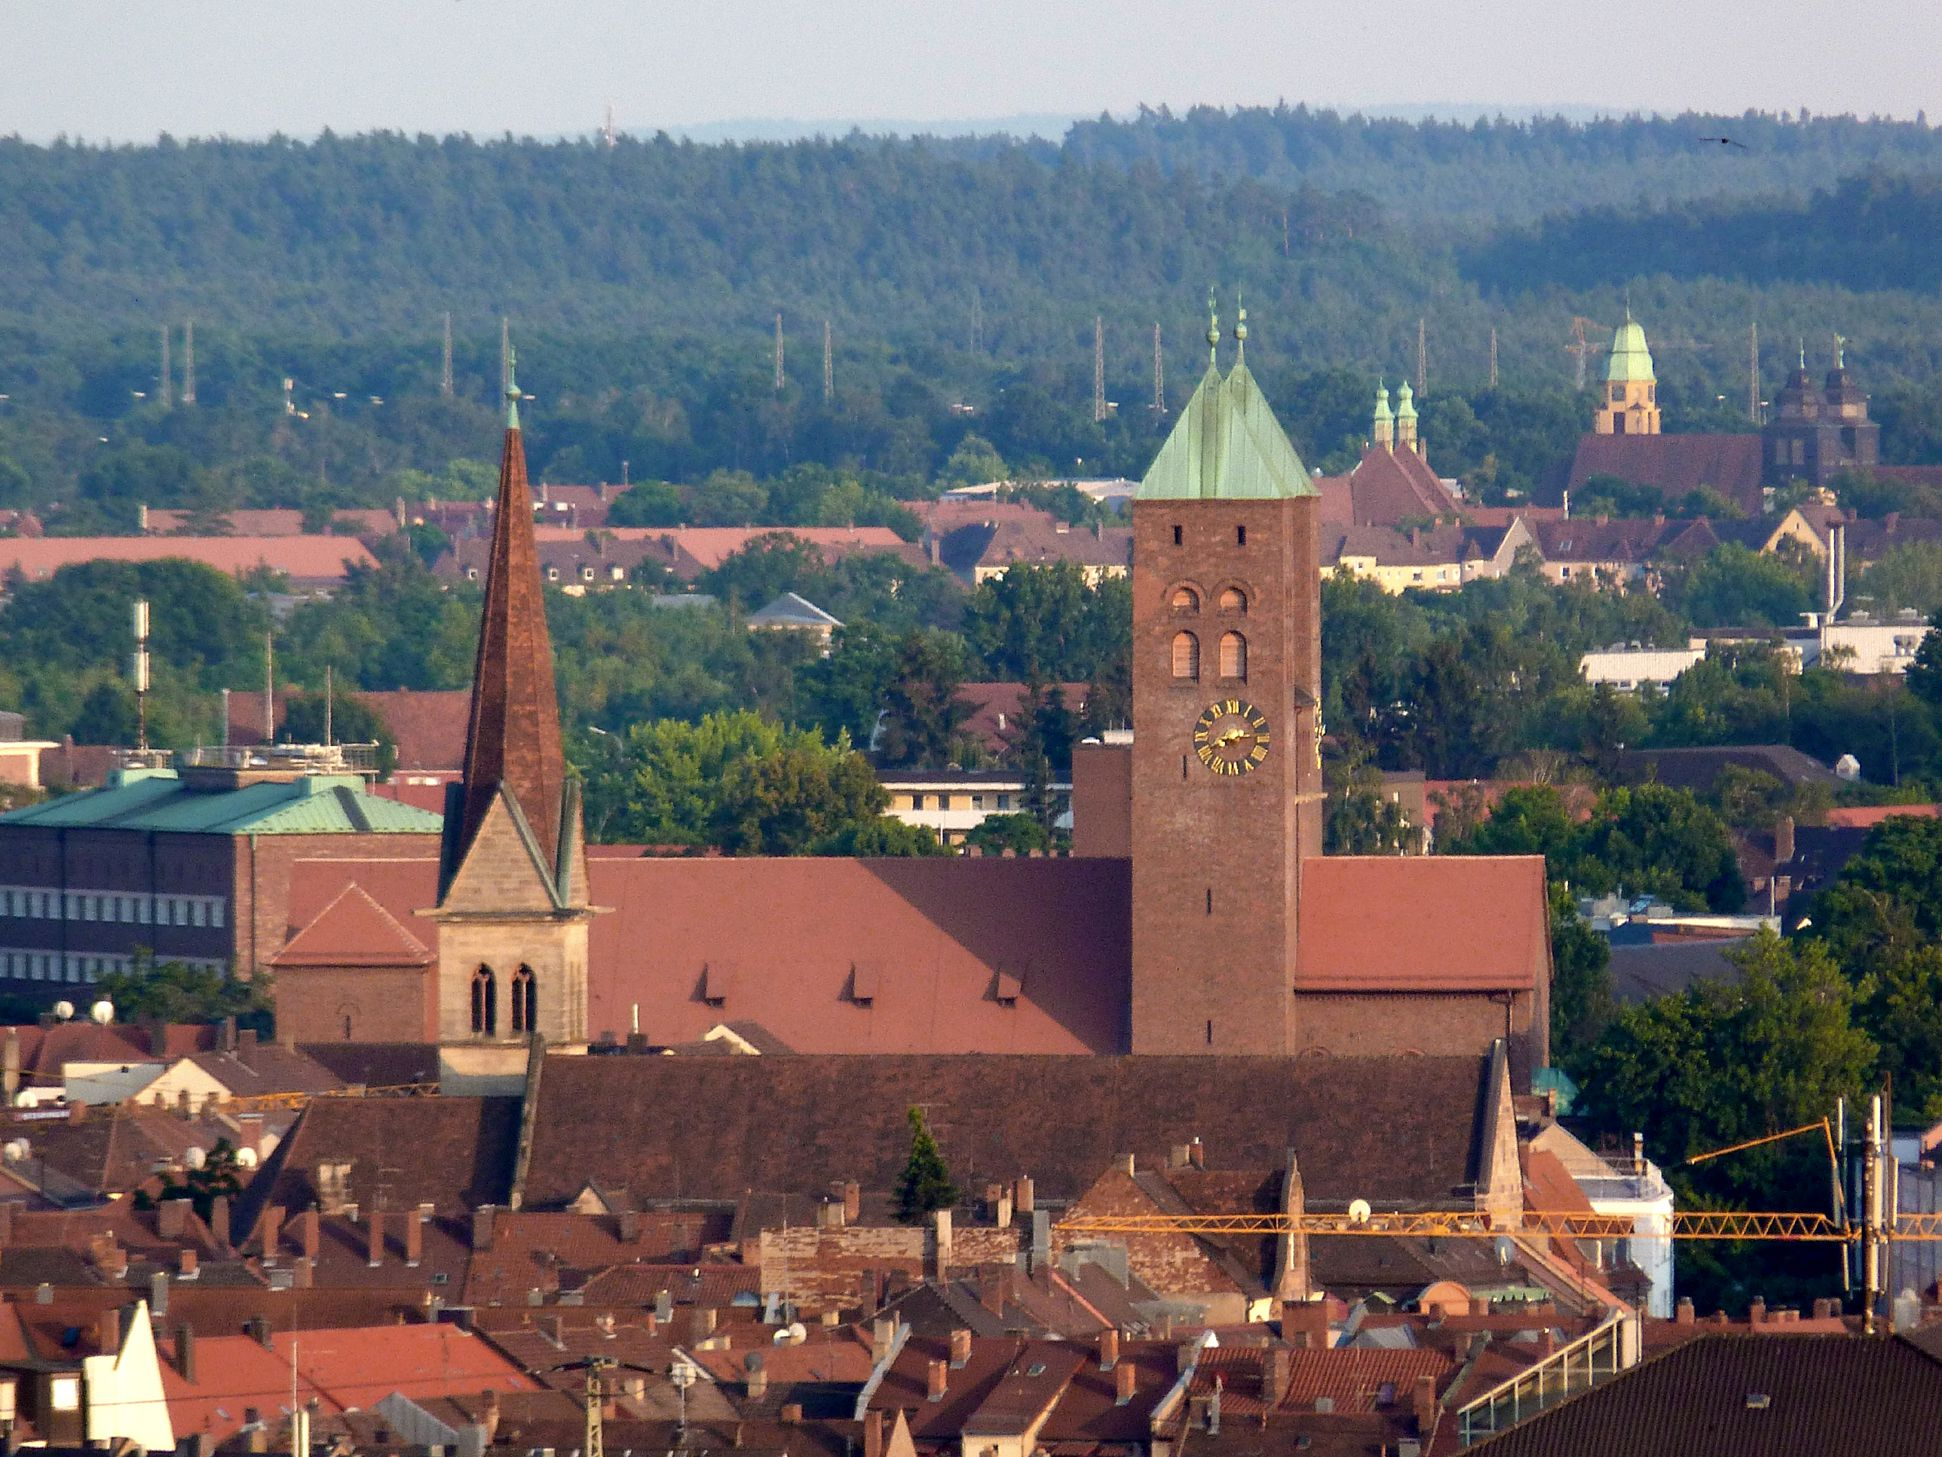 Gustav-Adolf-Memorial-Church View over the roof tops of the southern city, Herz-Jesu-Church in the foreground, marshalling-yard-settlement (Rangierbahnhof-Siedlung) at the back right edge of the picture